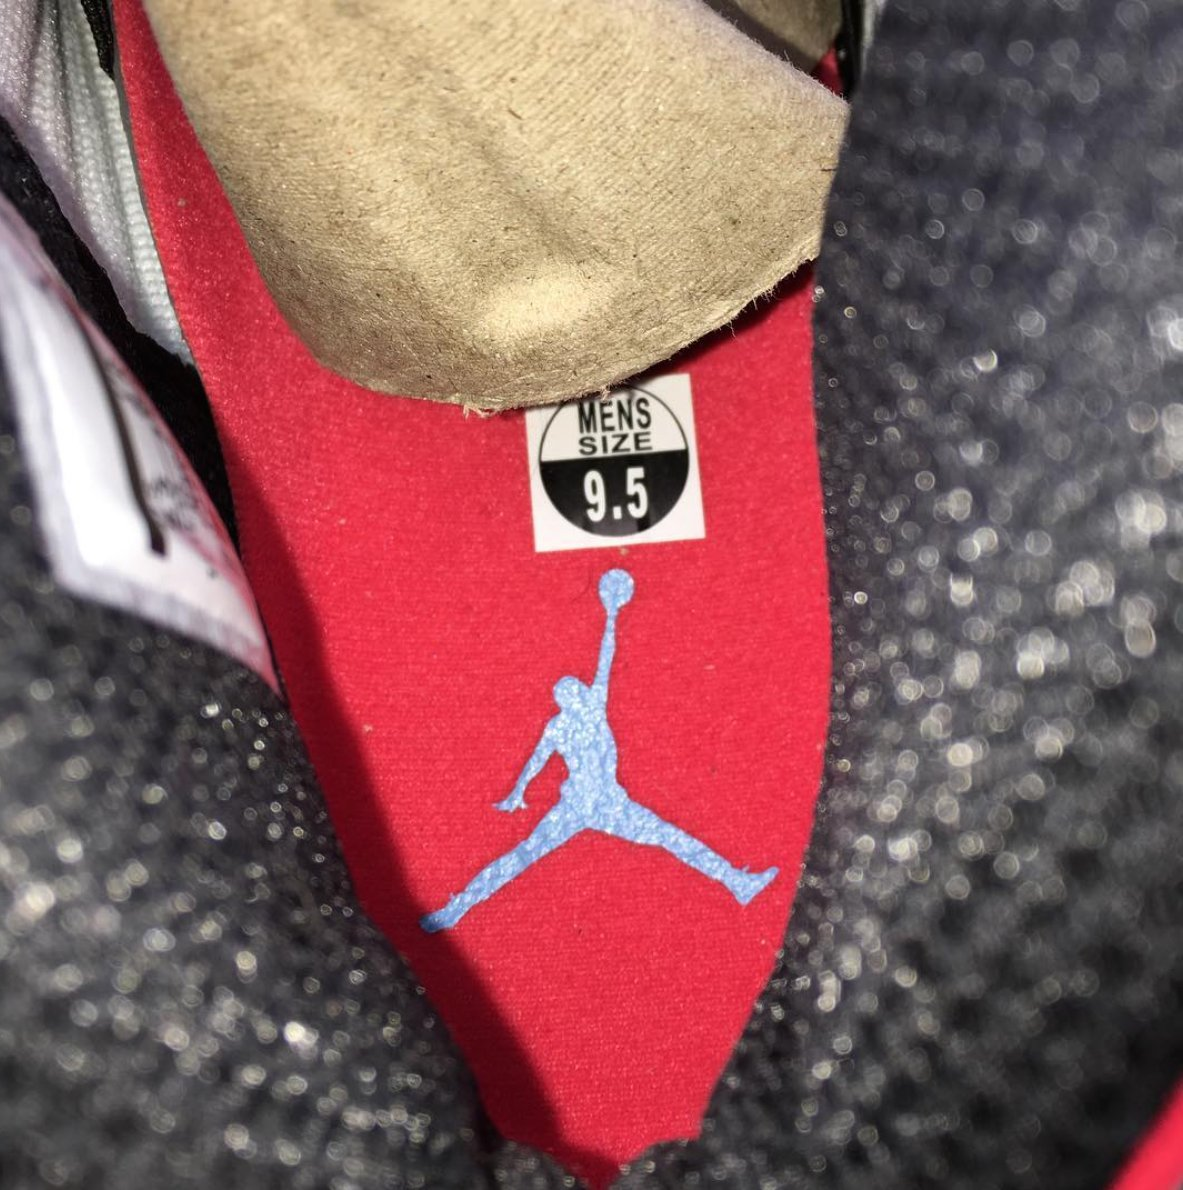 dd9d2172e81 Nike Air Jordan Retro 10 X Chicago Double Nickel 45 City Pack BRED Size 10  VNDS